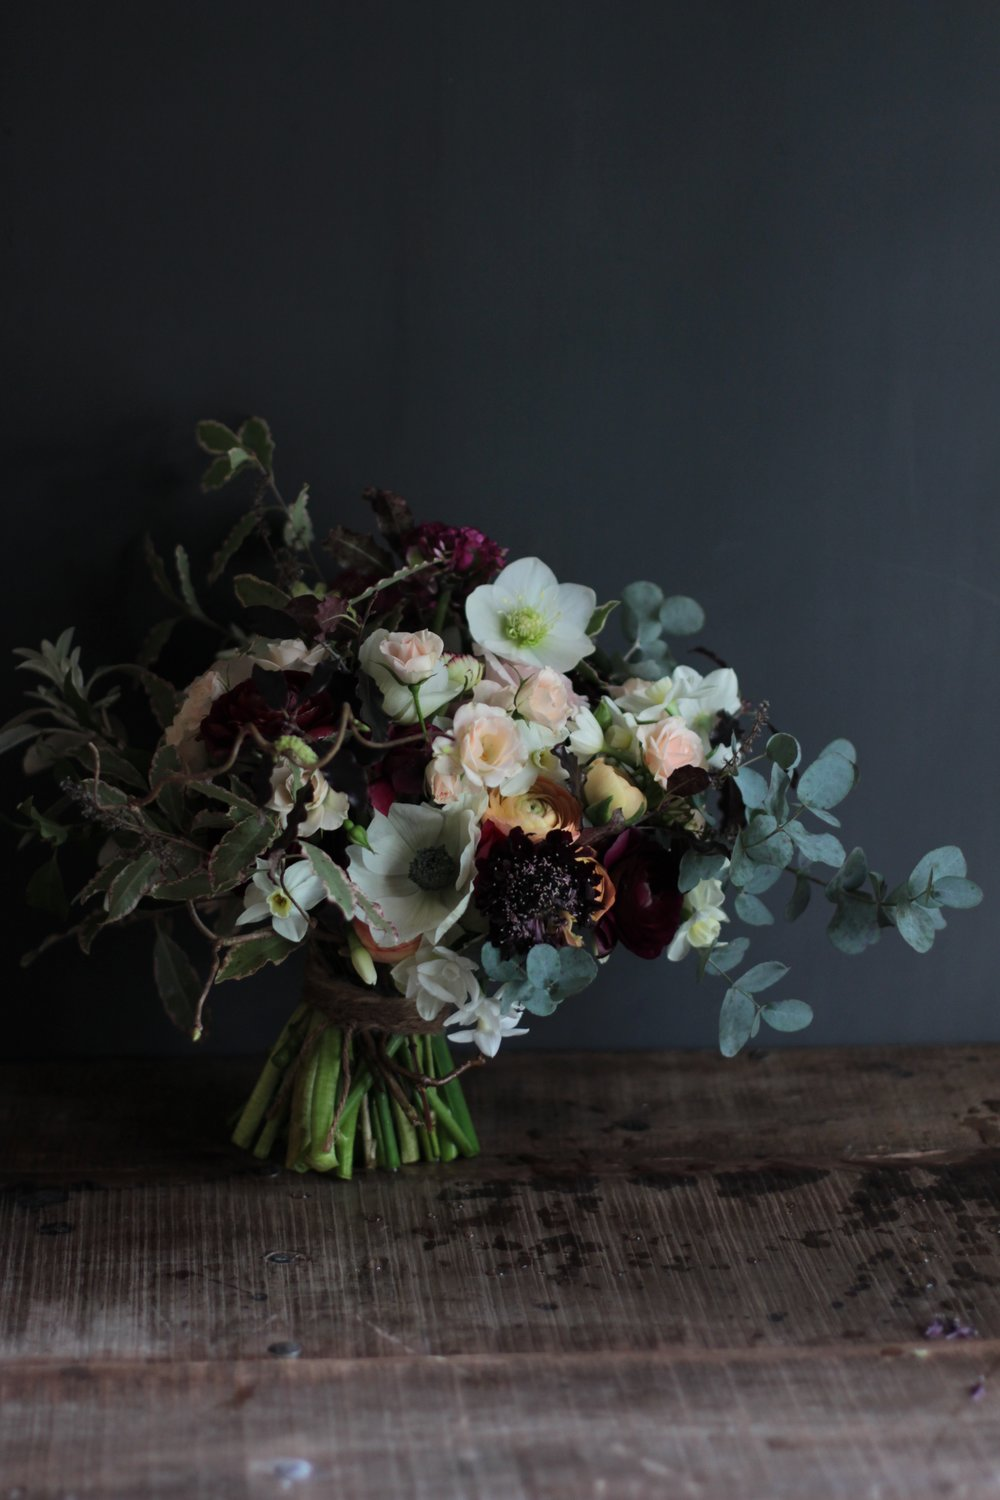 Original wedding bouquet by knet wedding flowers florist Jennifer Pinder